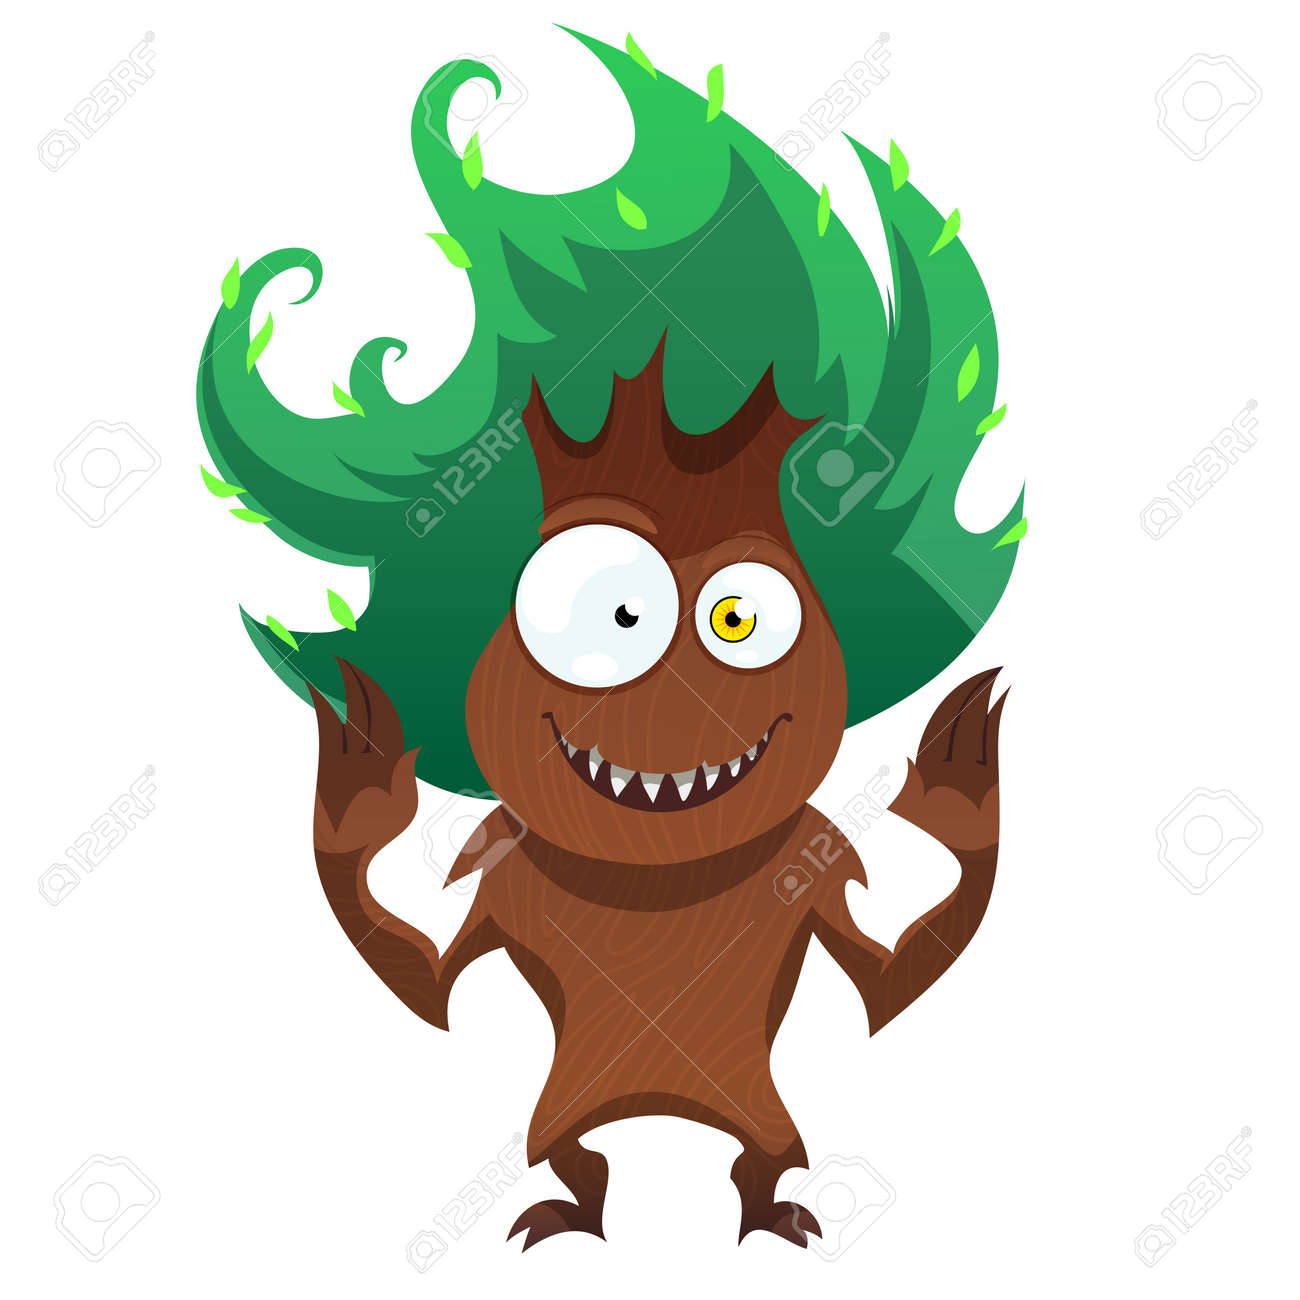 Funny Tree Monster For Halloween Spooky Tree Isolated On White Royalty Free Cliparts Vectors And Stock Illustration Image 64751248 A good example would be an image of the south park characters done. funny tree monster for halloween spooky tree isolated on white